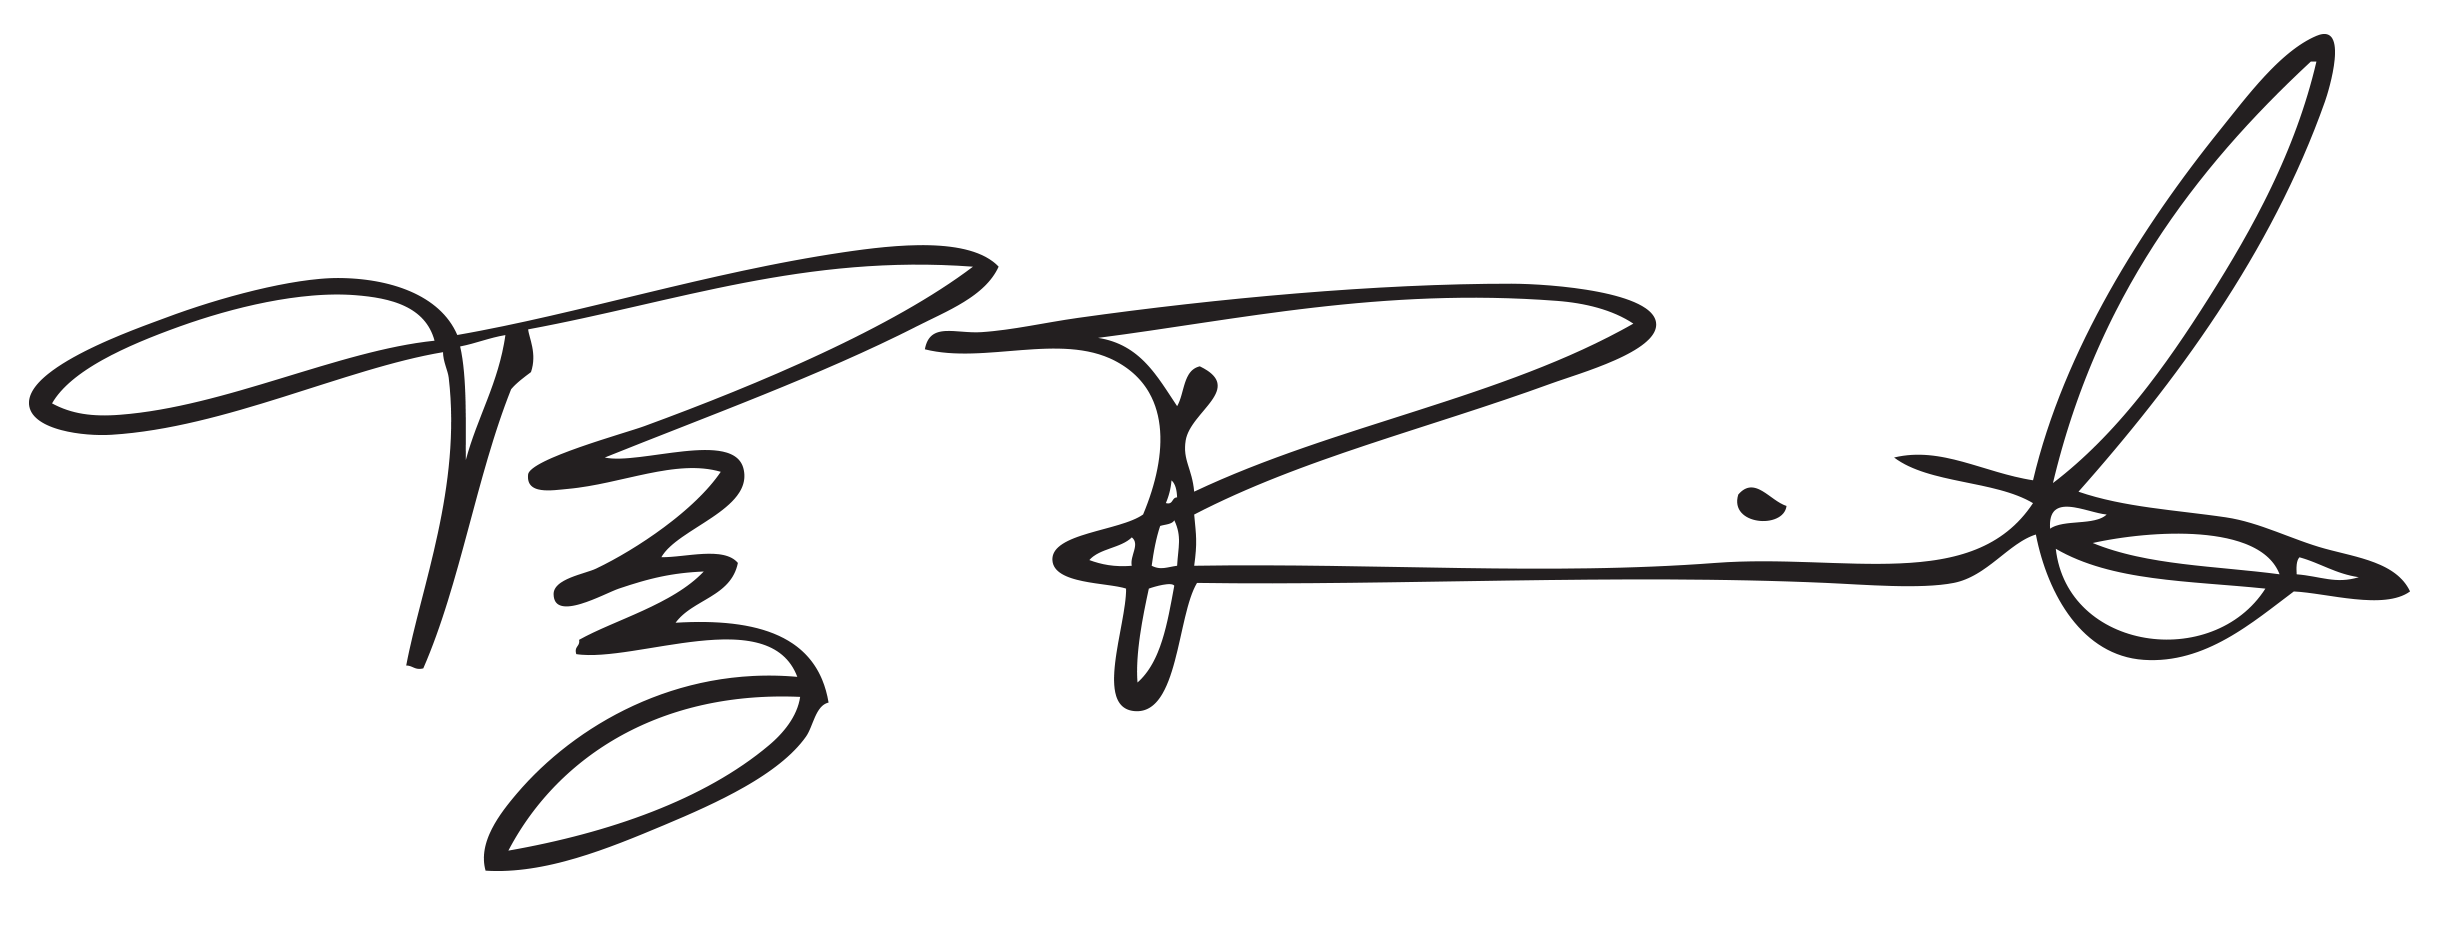 TF_Signature_home1.png